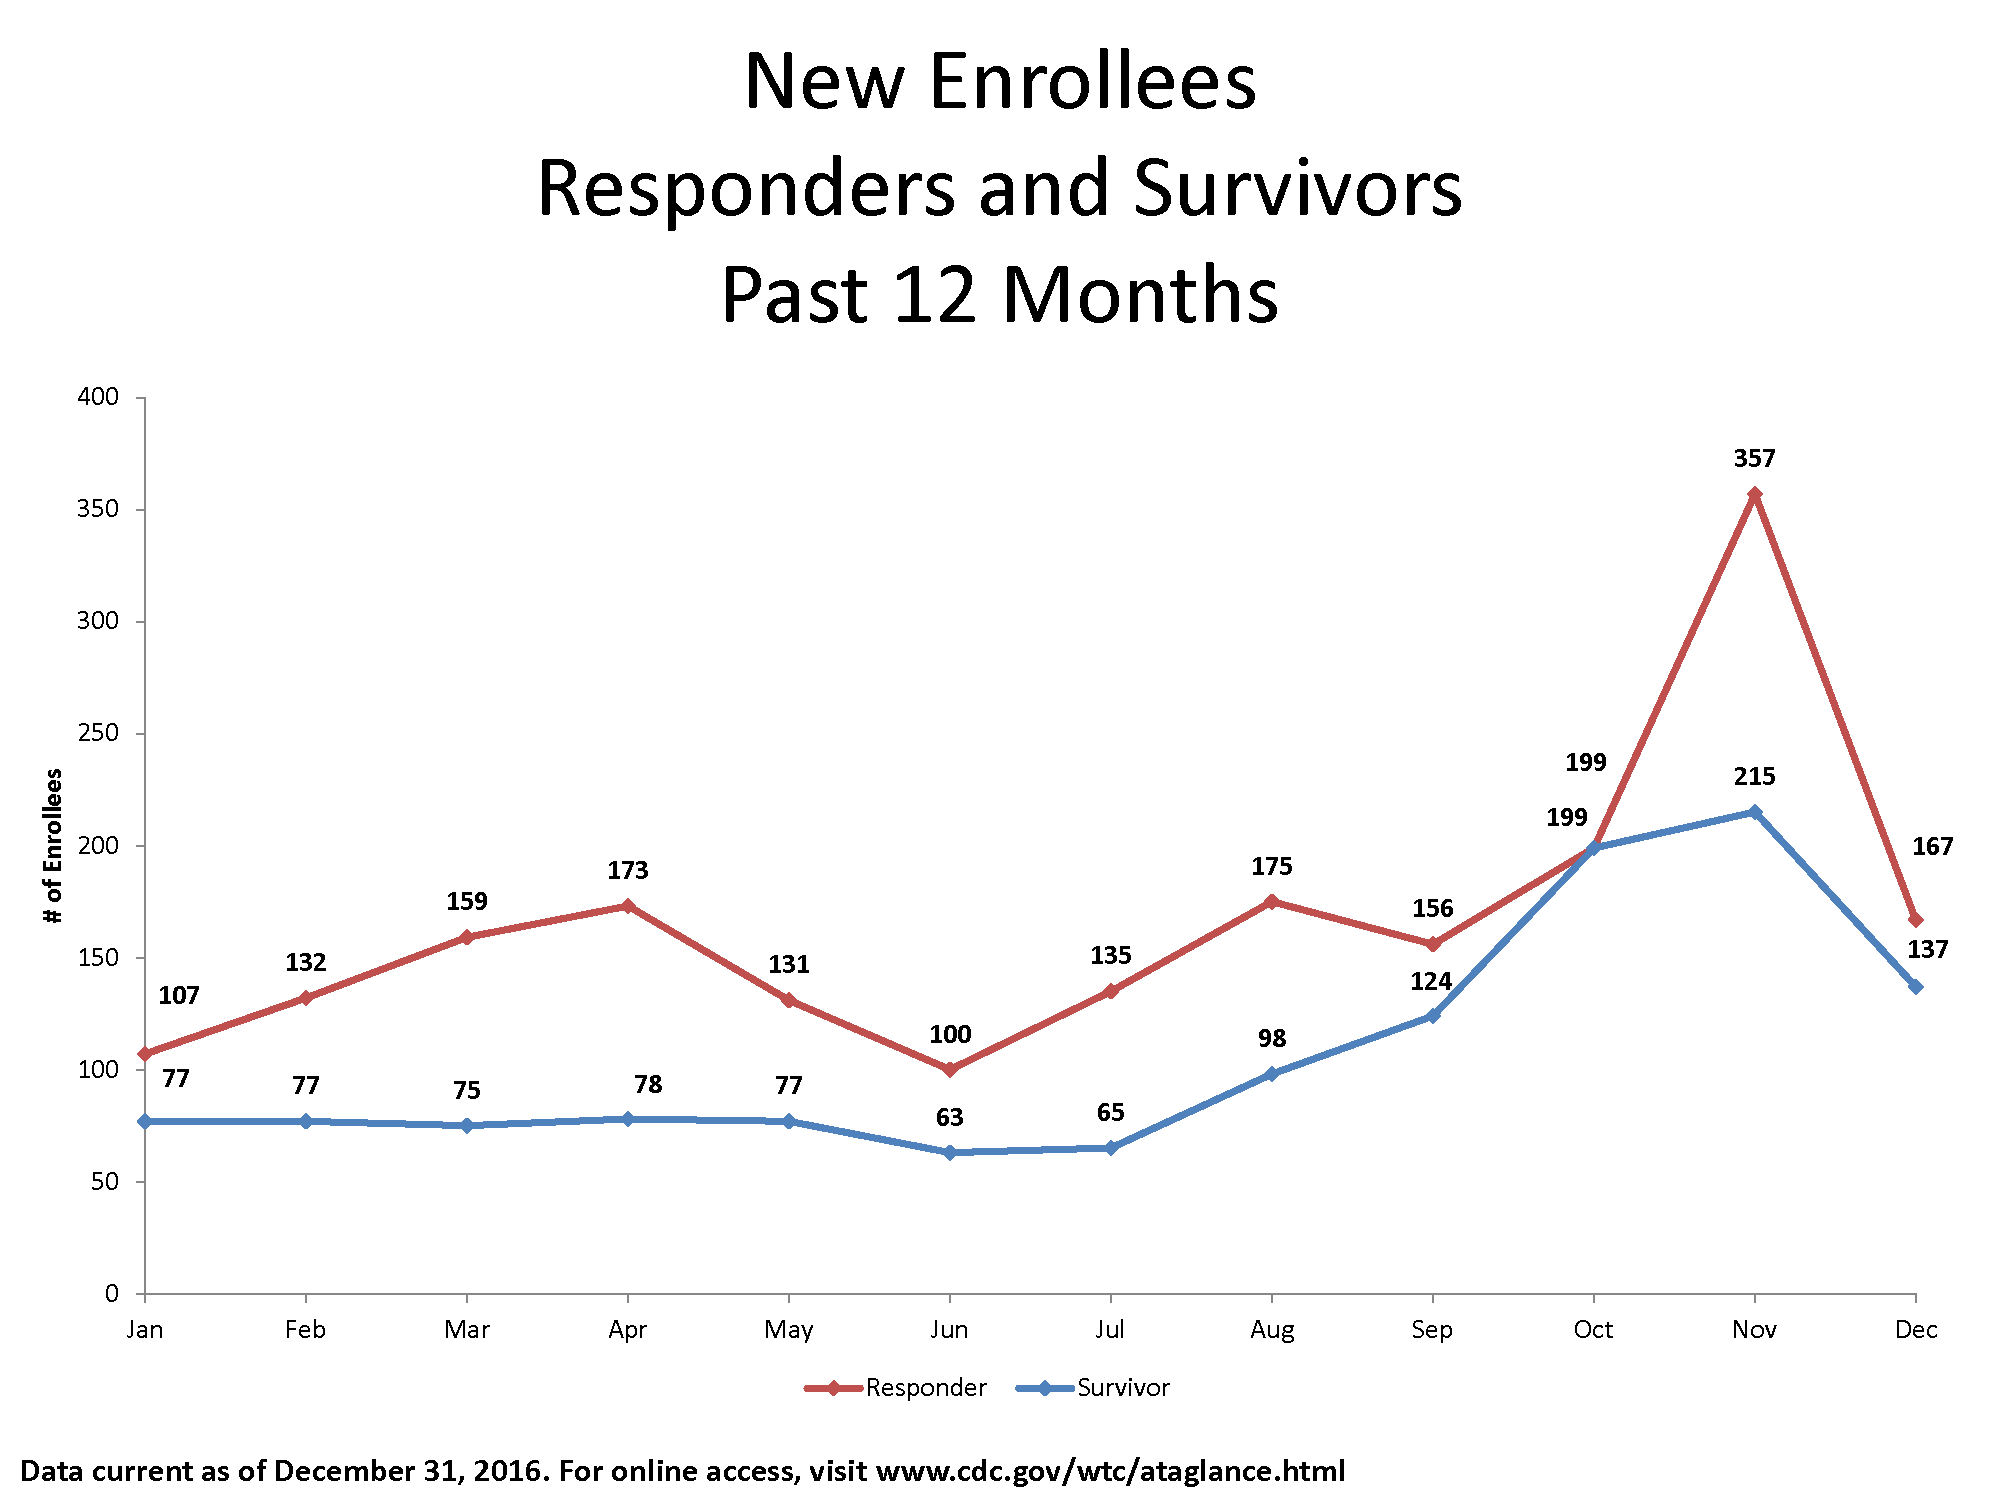 Line graph of newly enrolled members by month from January 2015 through December 2016 as follows: